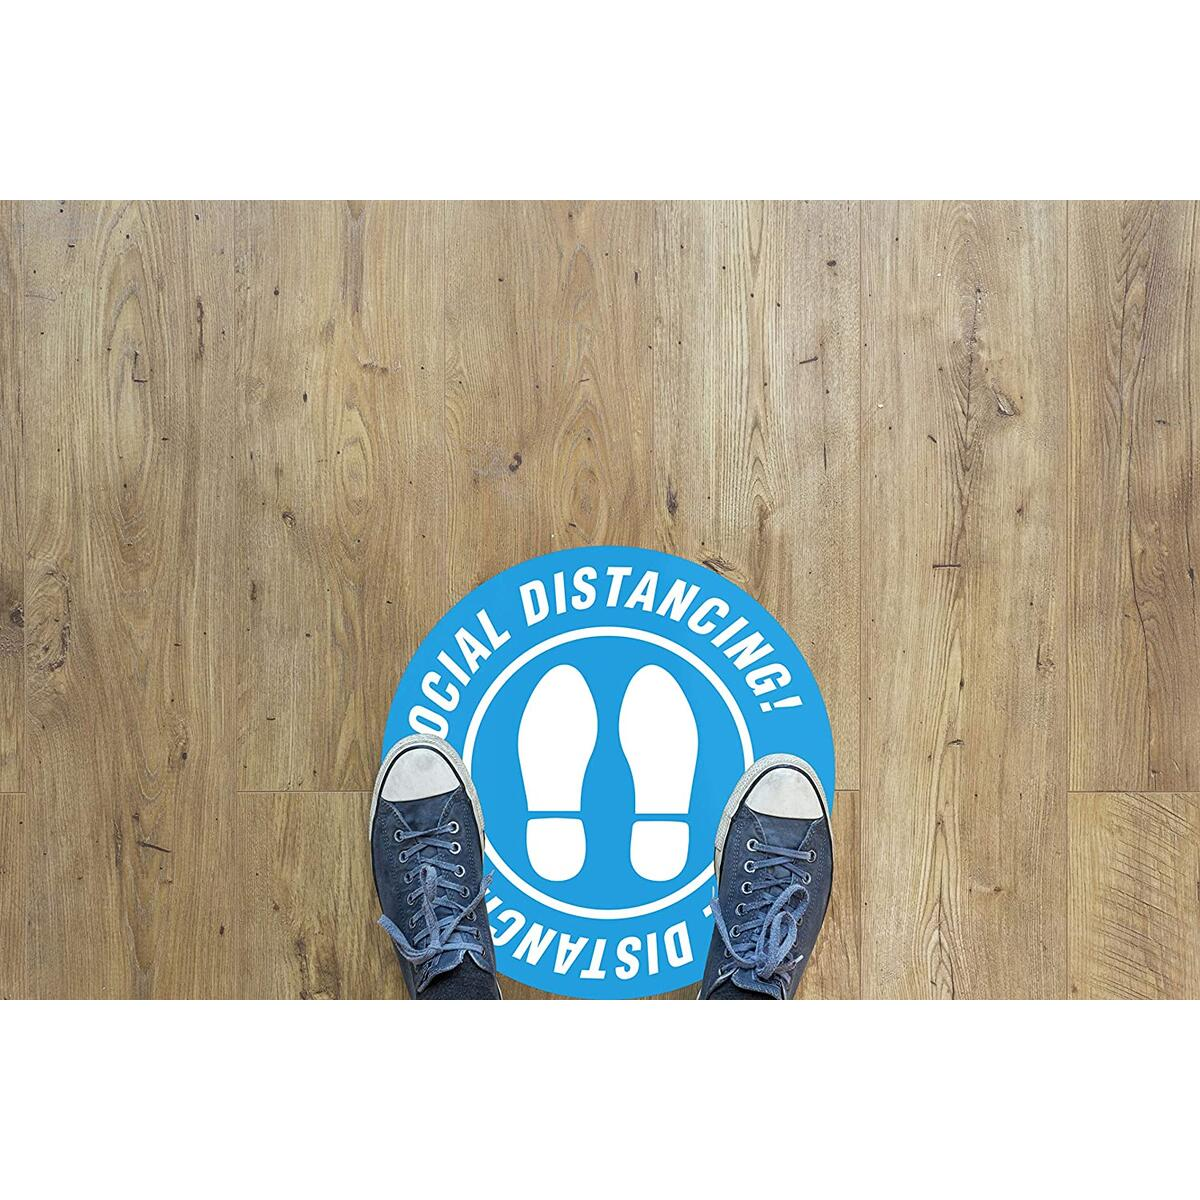 Social Distance Floor Stickers - Social Distancing Floor Decals - Social Distancing Sign - Non Slip - Commercial Grade - Vinyl - Easy to Clean - 12 inch Round -10 Pack